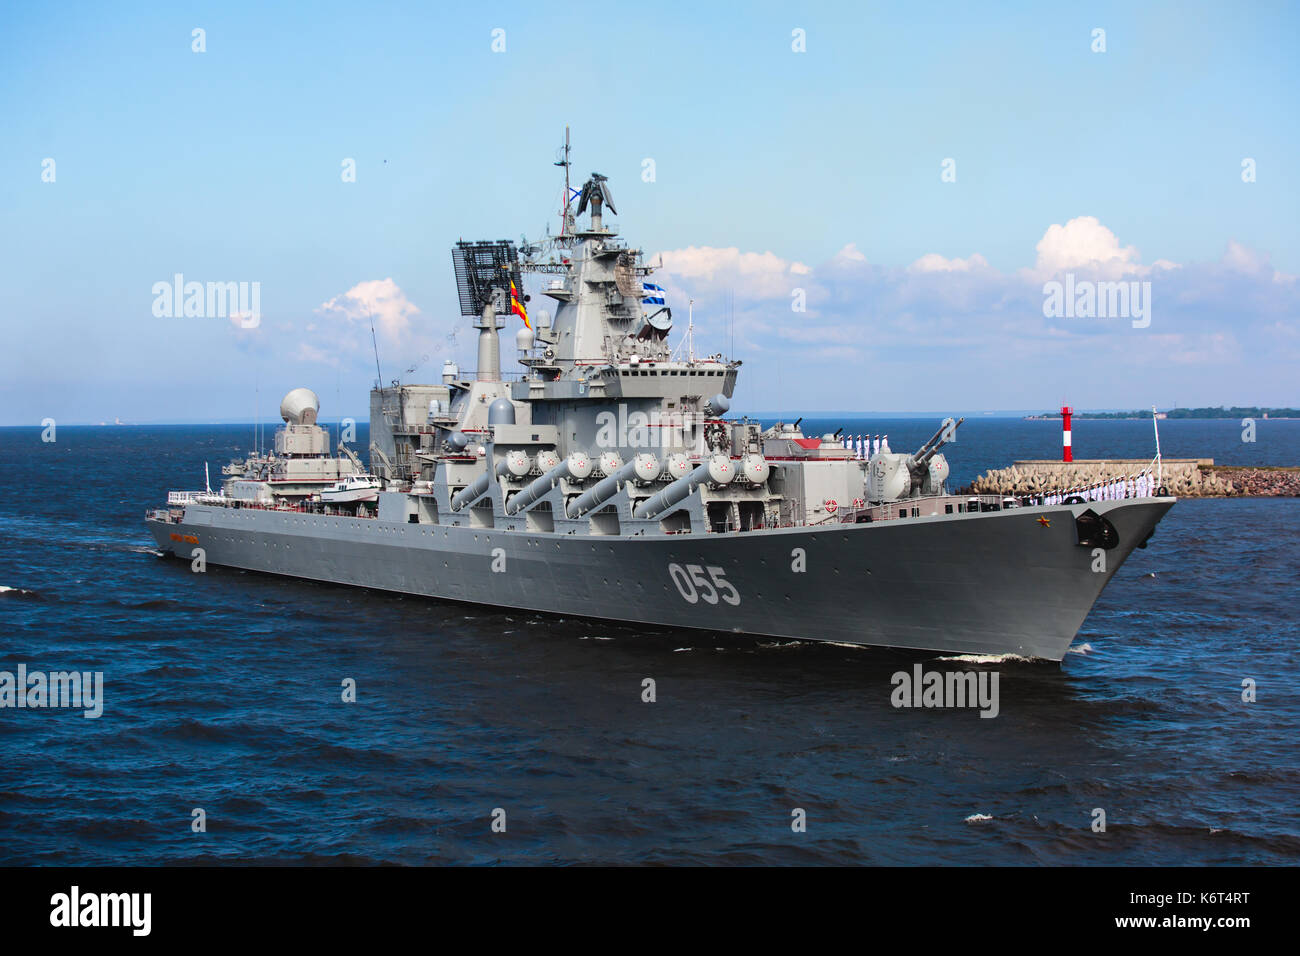 Russian Warship Stock Photos & Russian Warship Stock ...